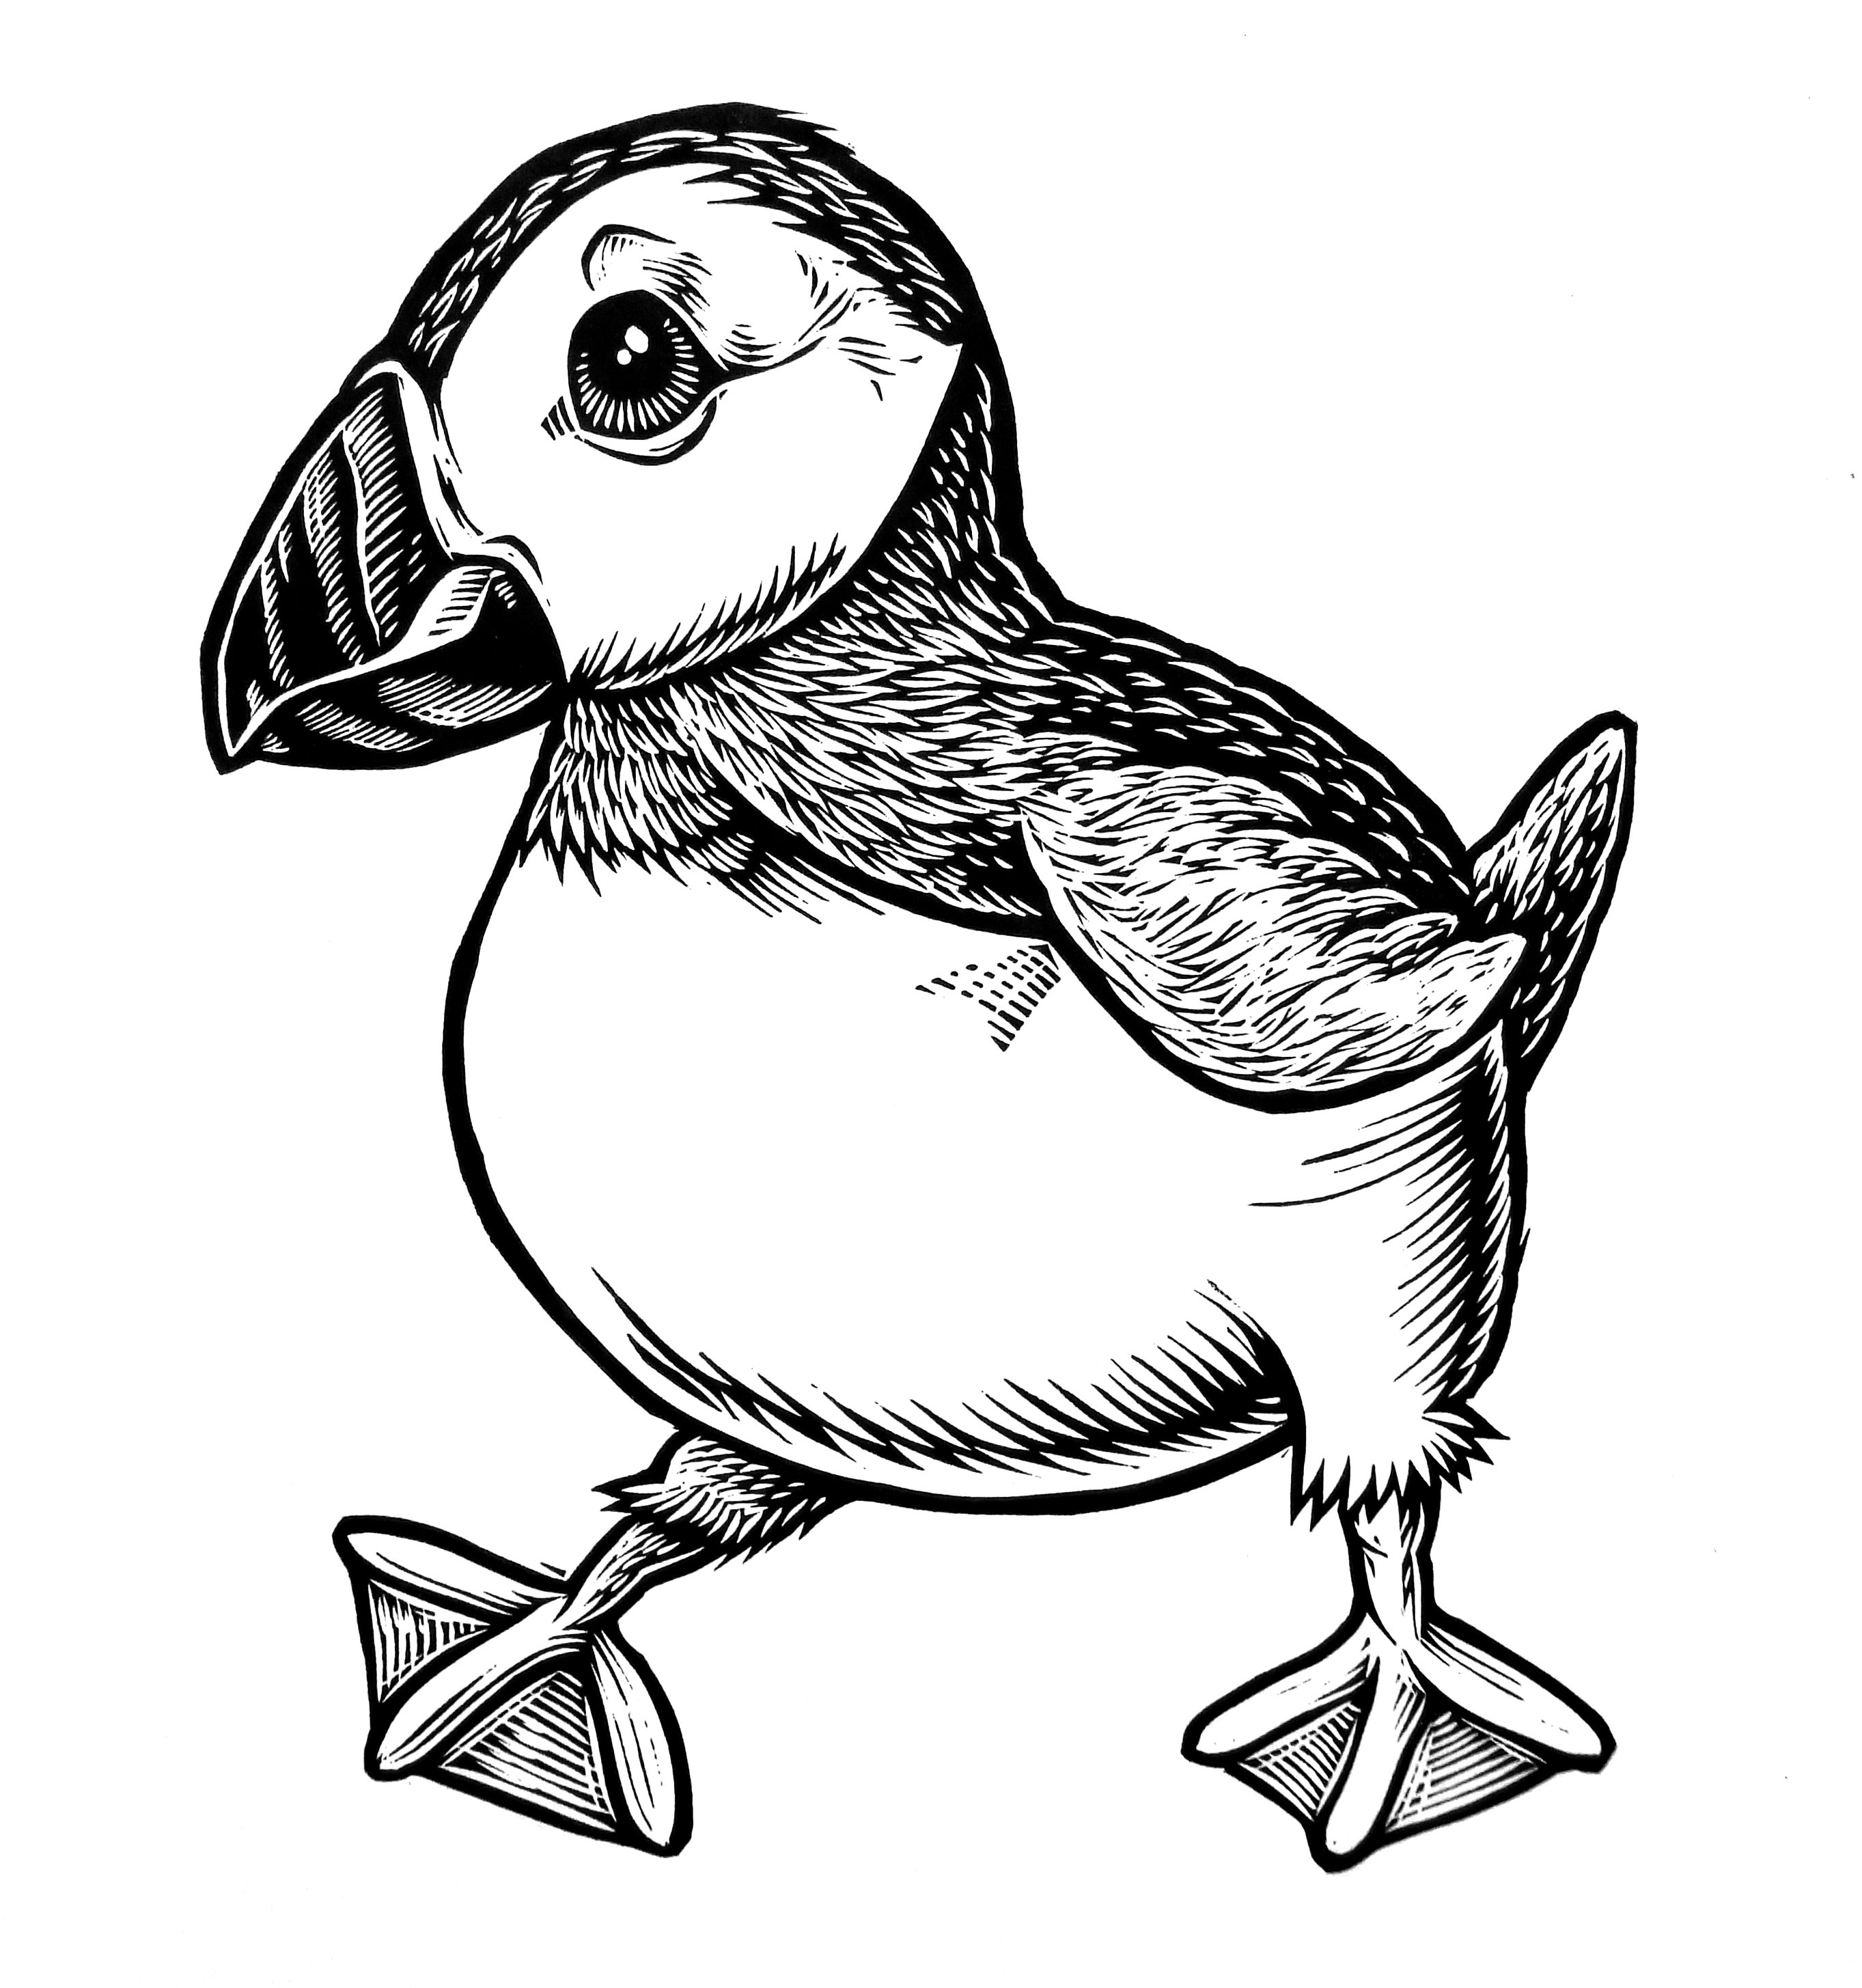 how to draw a puffin top 10 puffin coloring pages for toddlers coloring pages to a how draw puffin